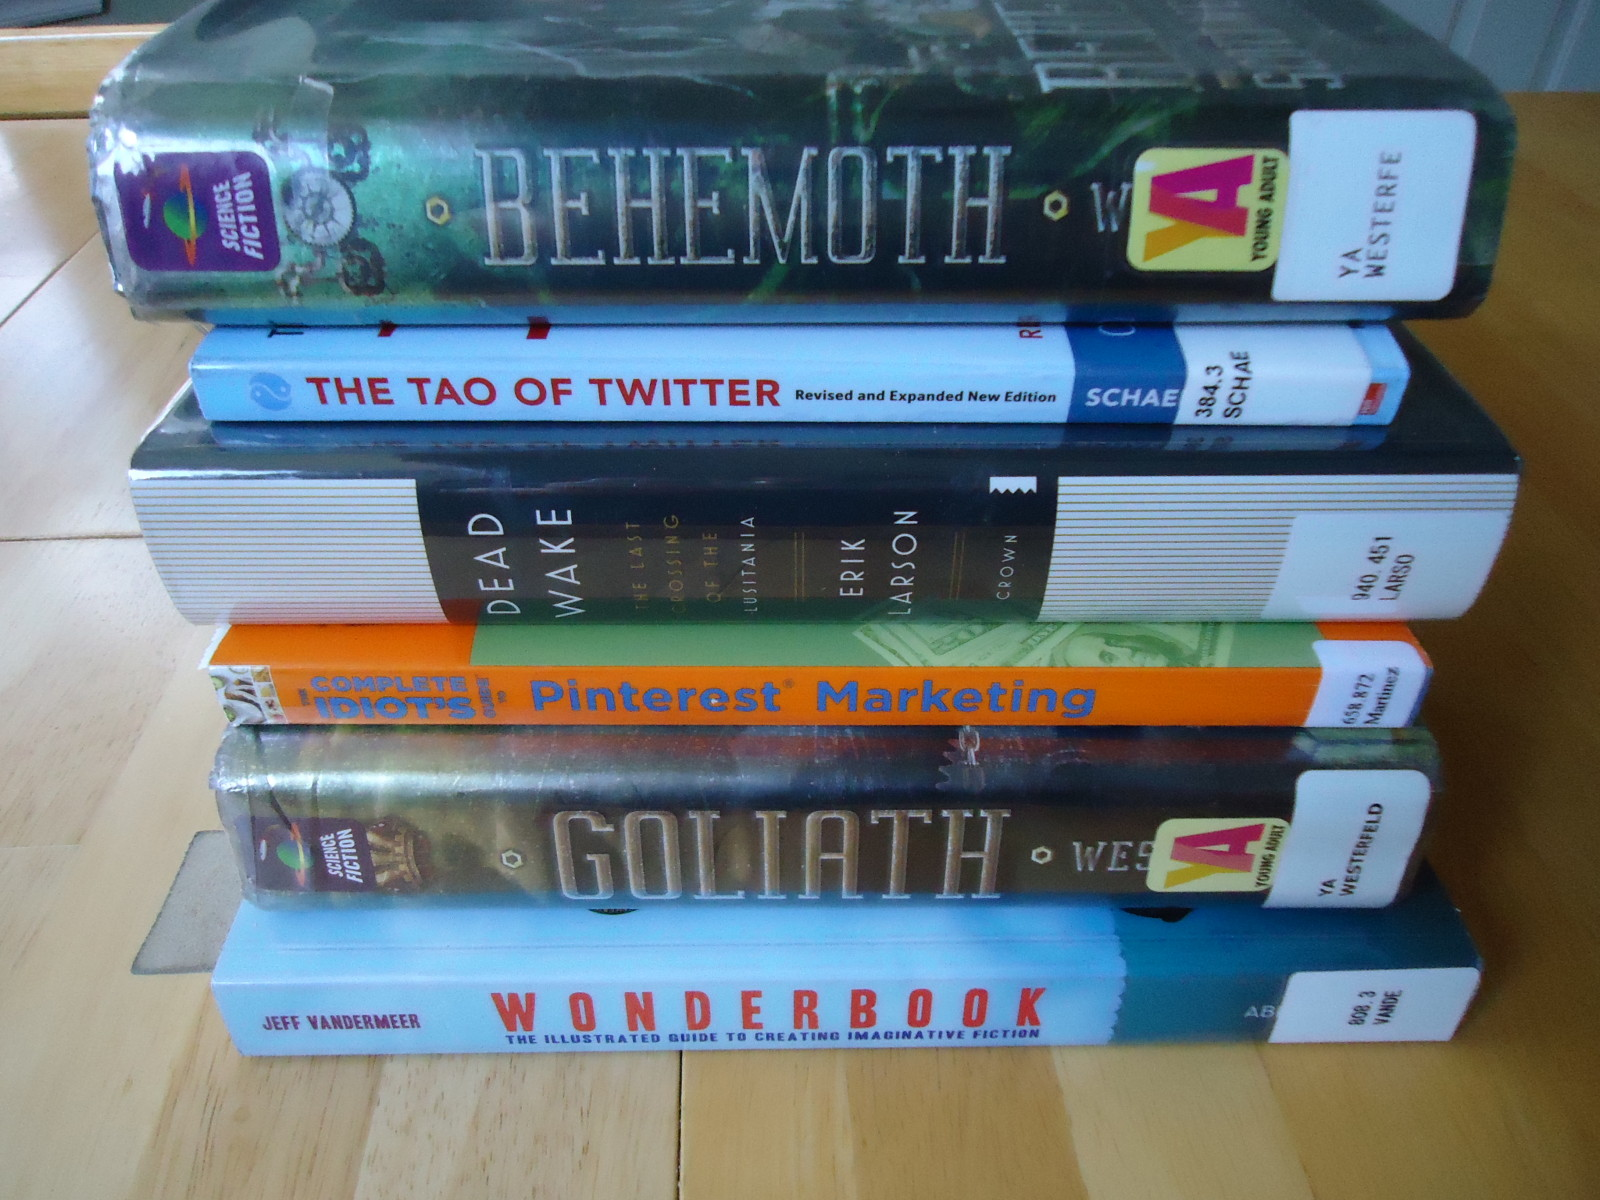 Library Stack 3/11/15